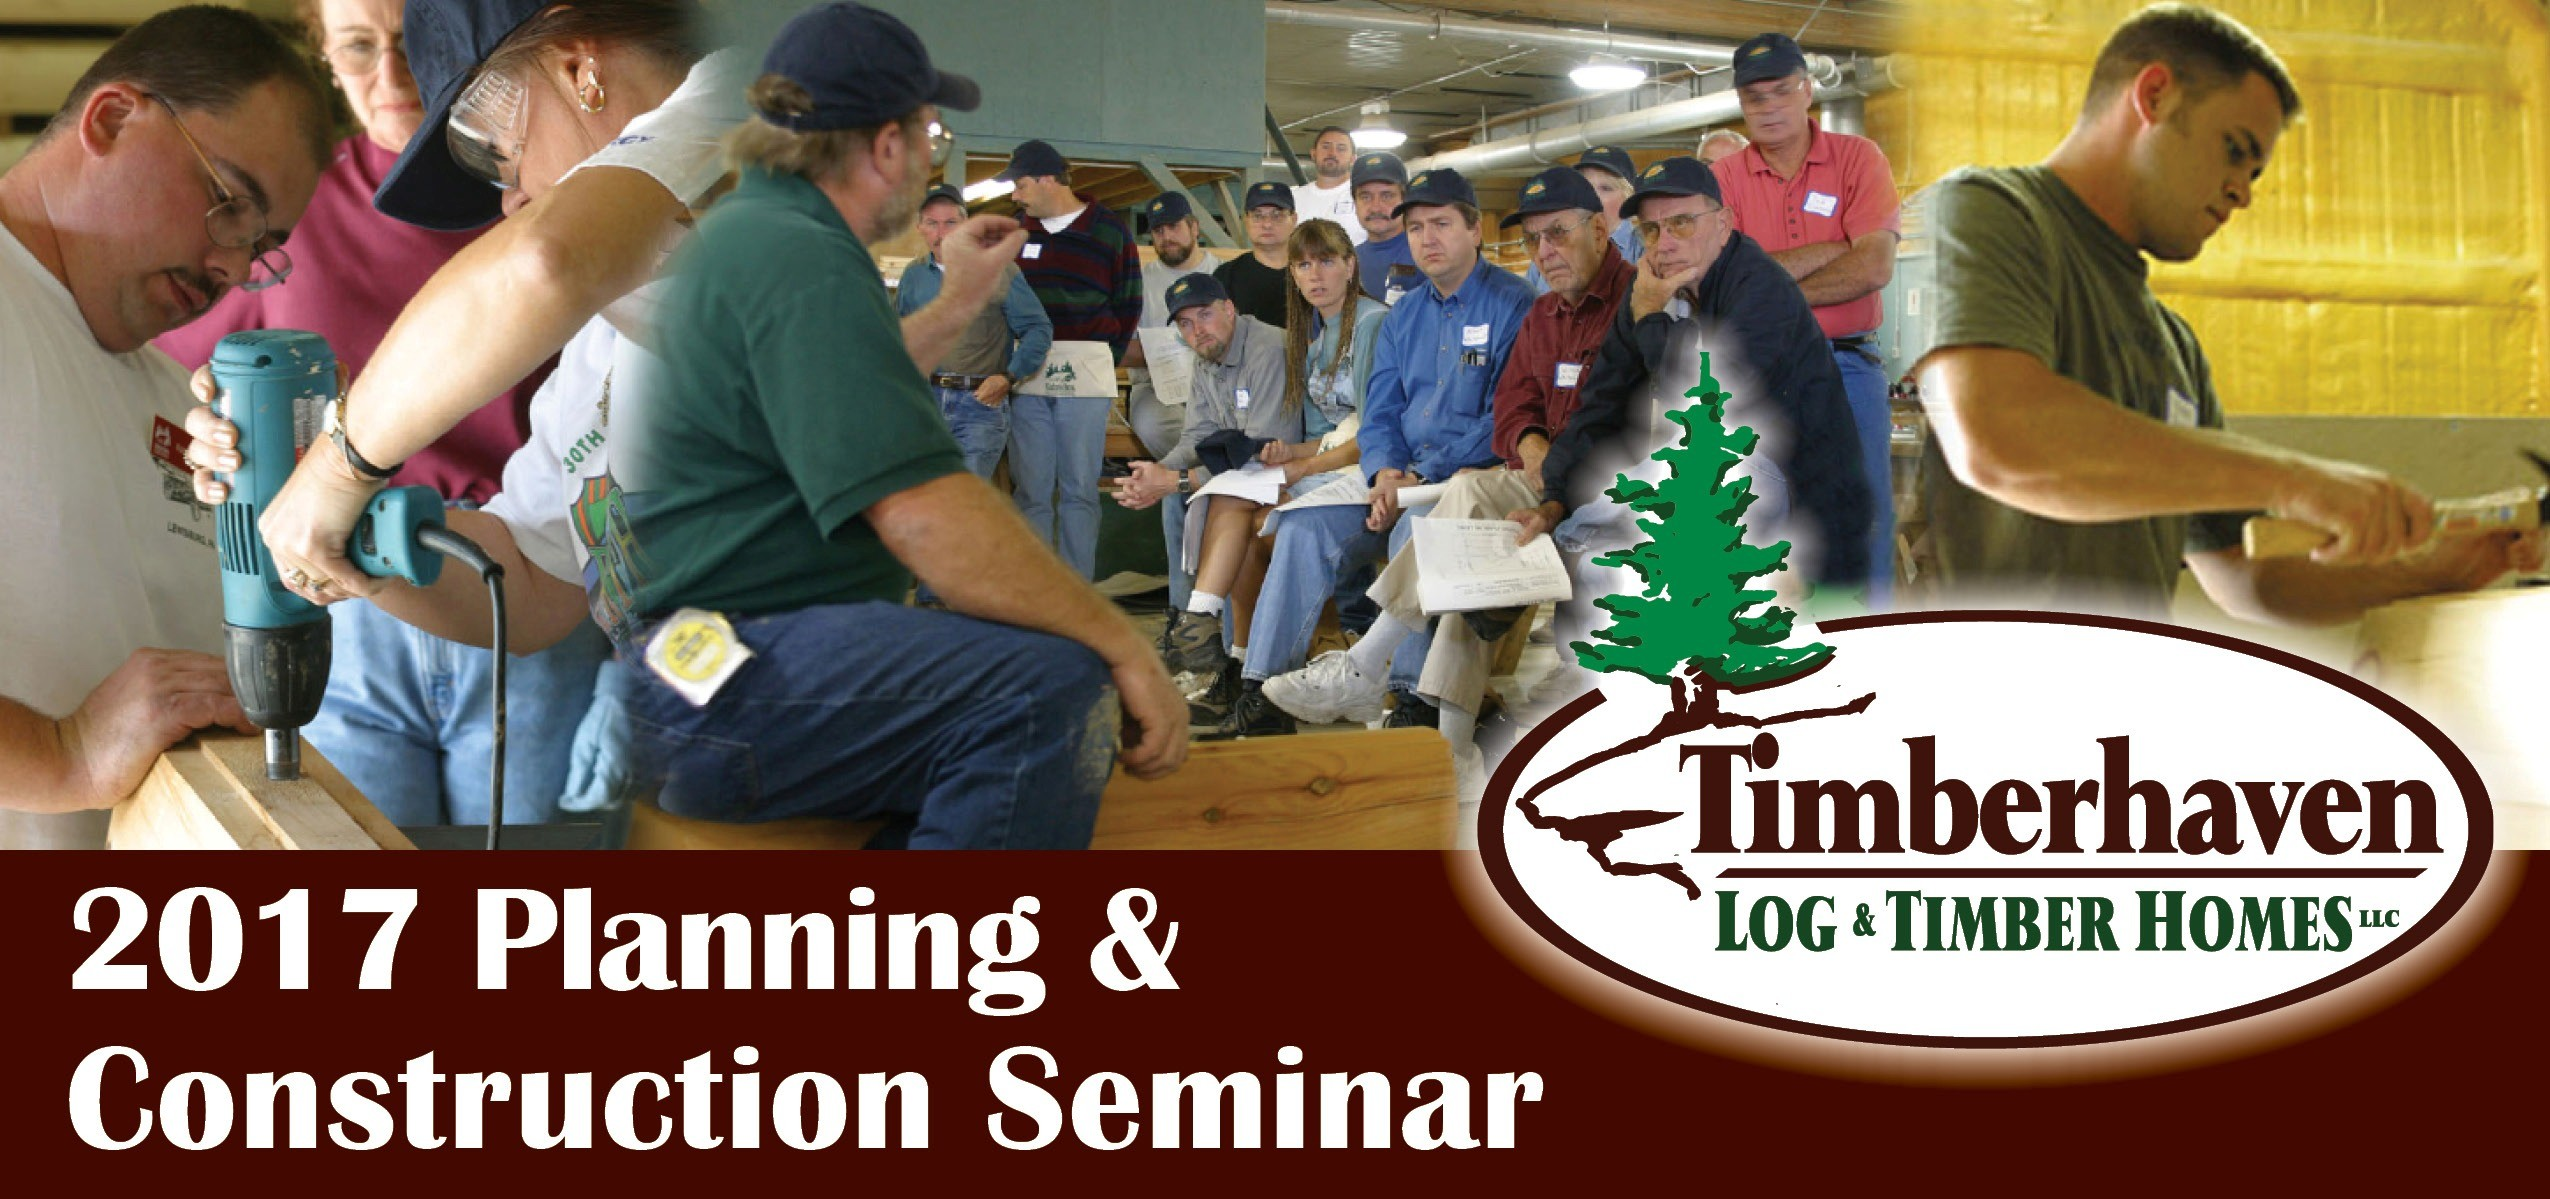 Another Successful Log Home Planning Seminar by Timberhaven